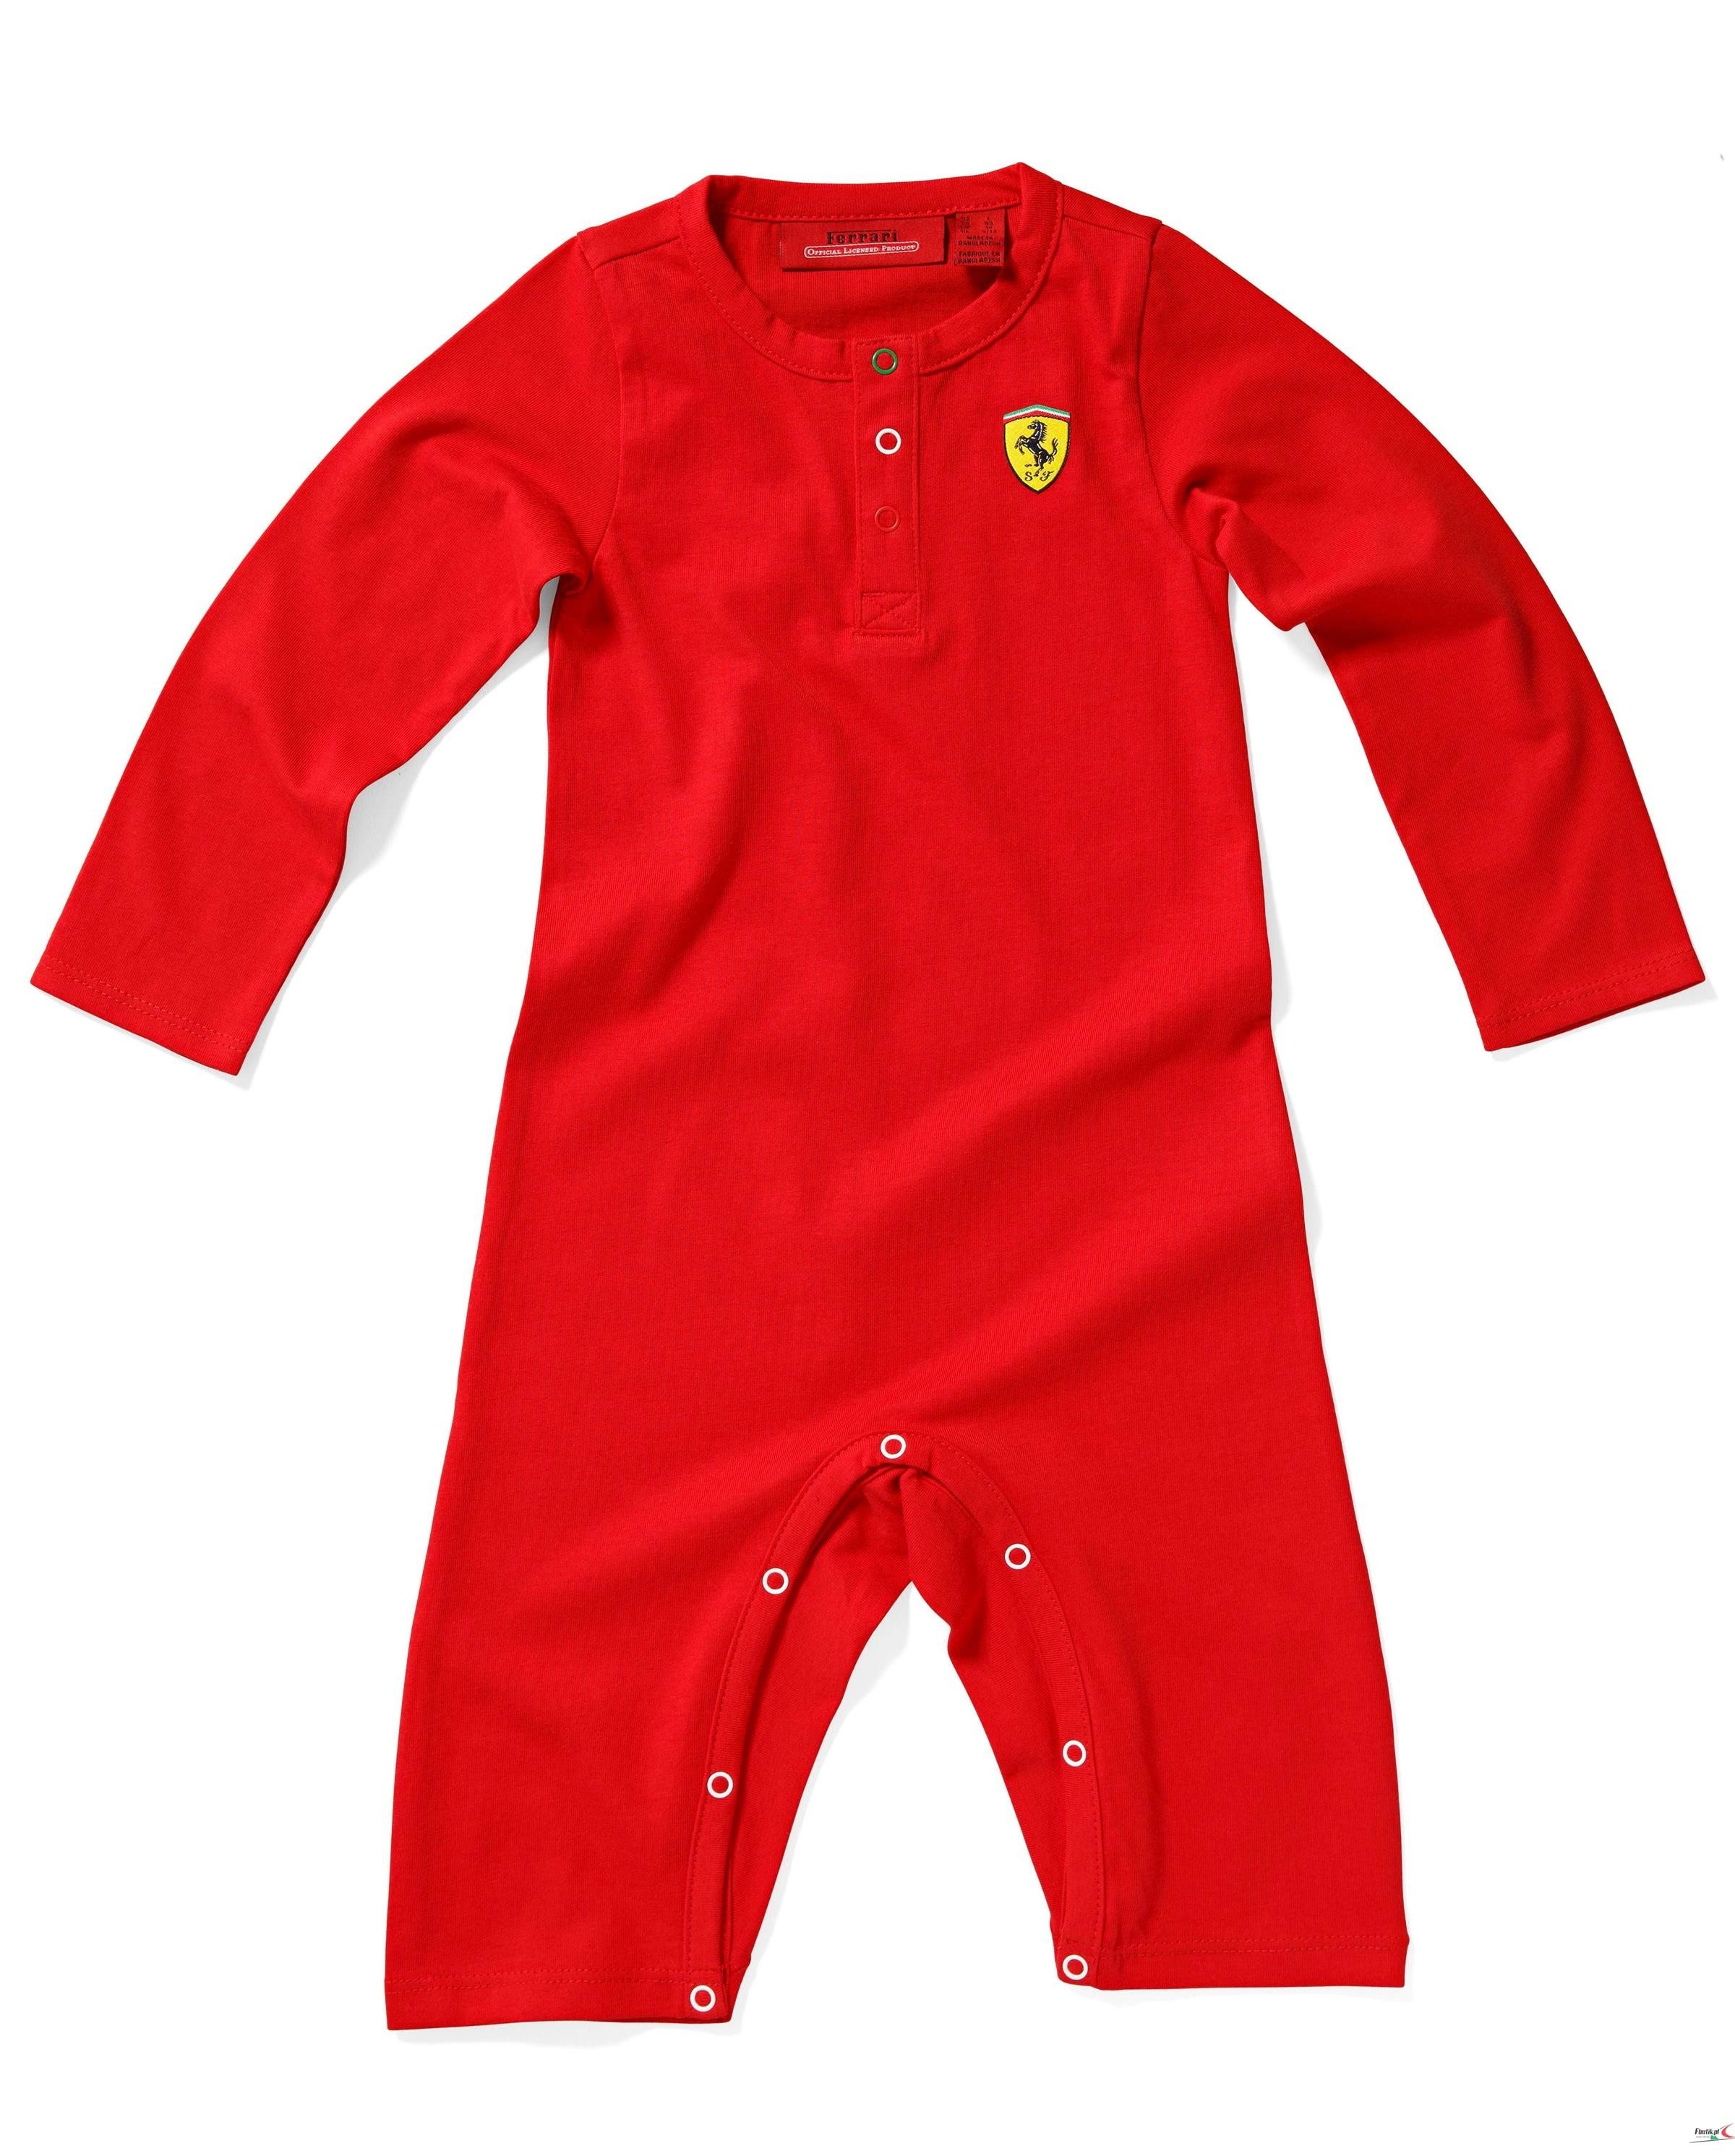 clothes clothing used s baby original c overall months ferrari size infant onsie unisex